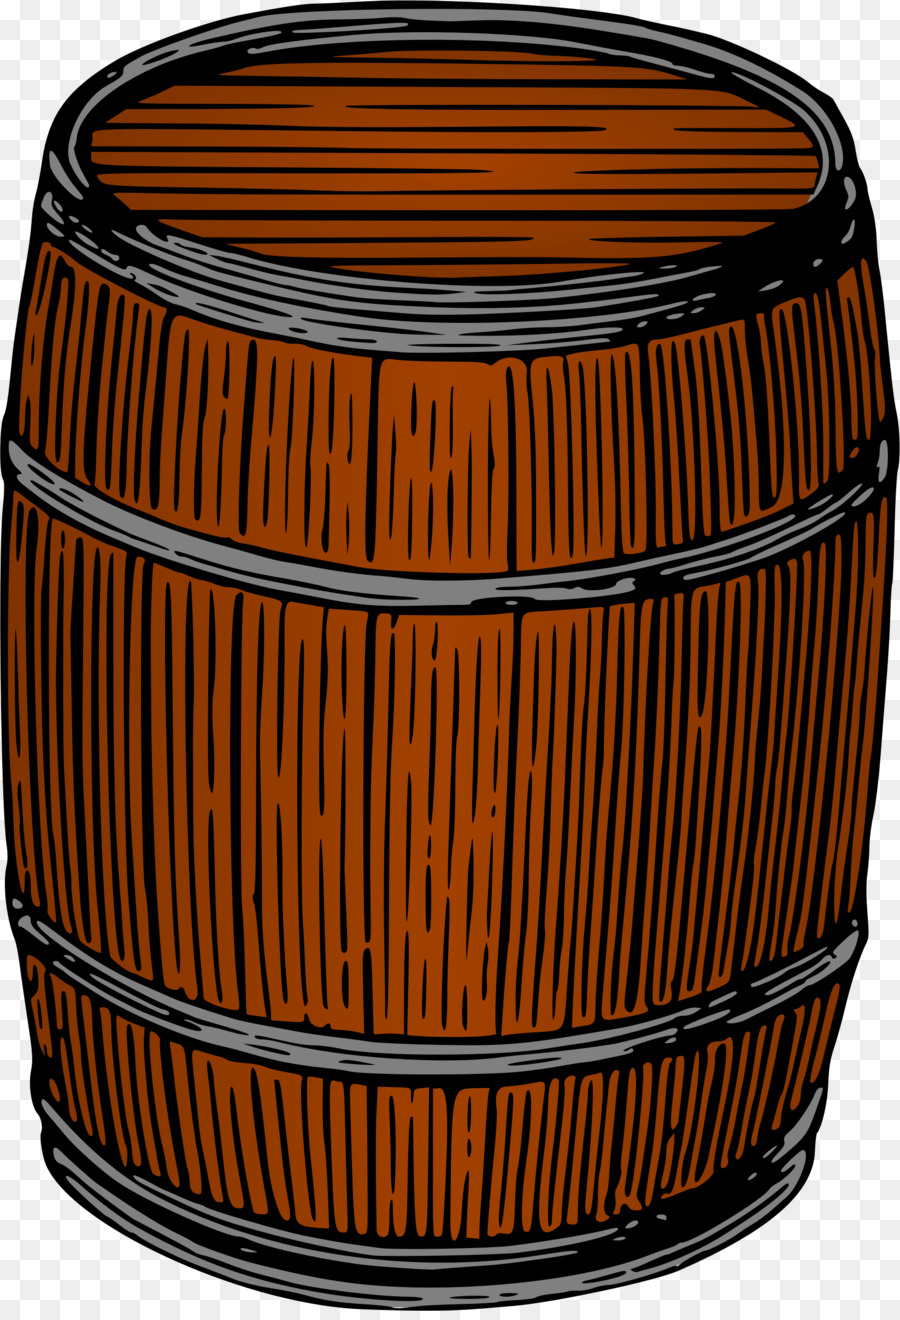 Beer cask clipart png transparent Beer Cartoon clipart - Beer, Wine, Product, transparent clip art png transparent